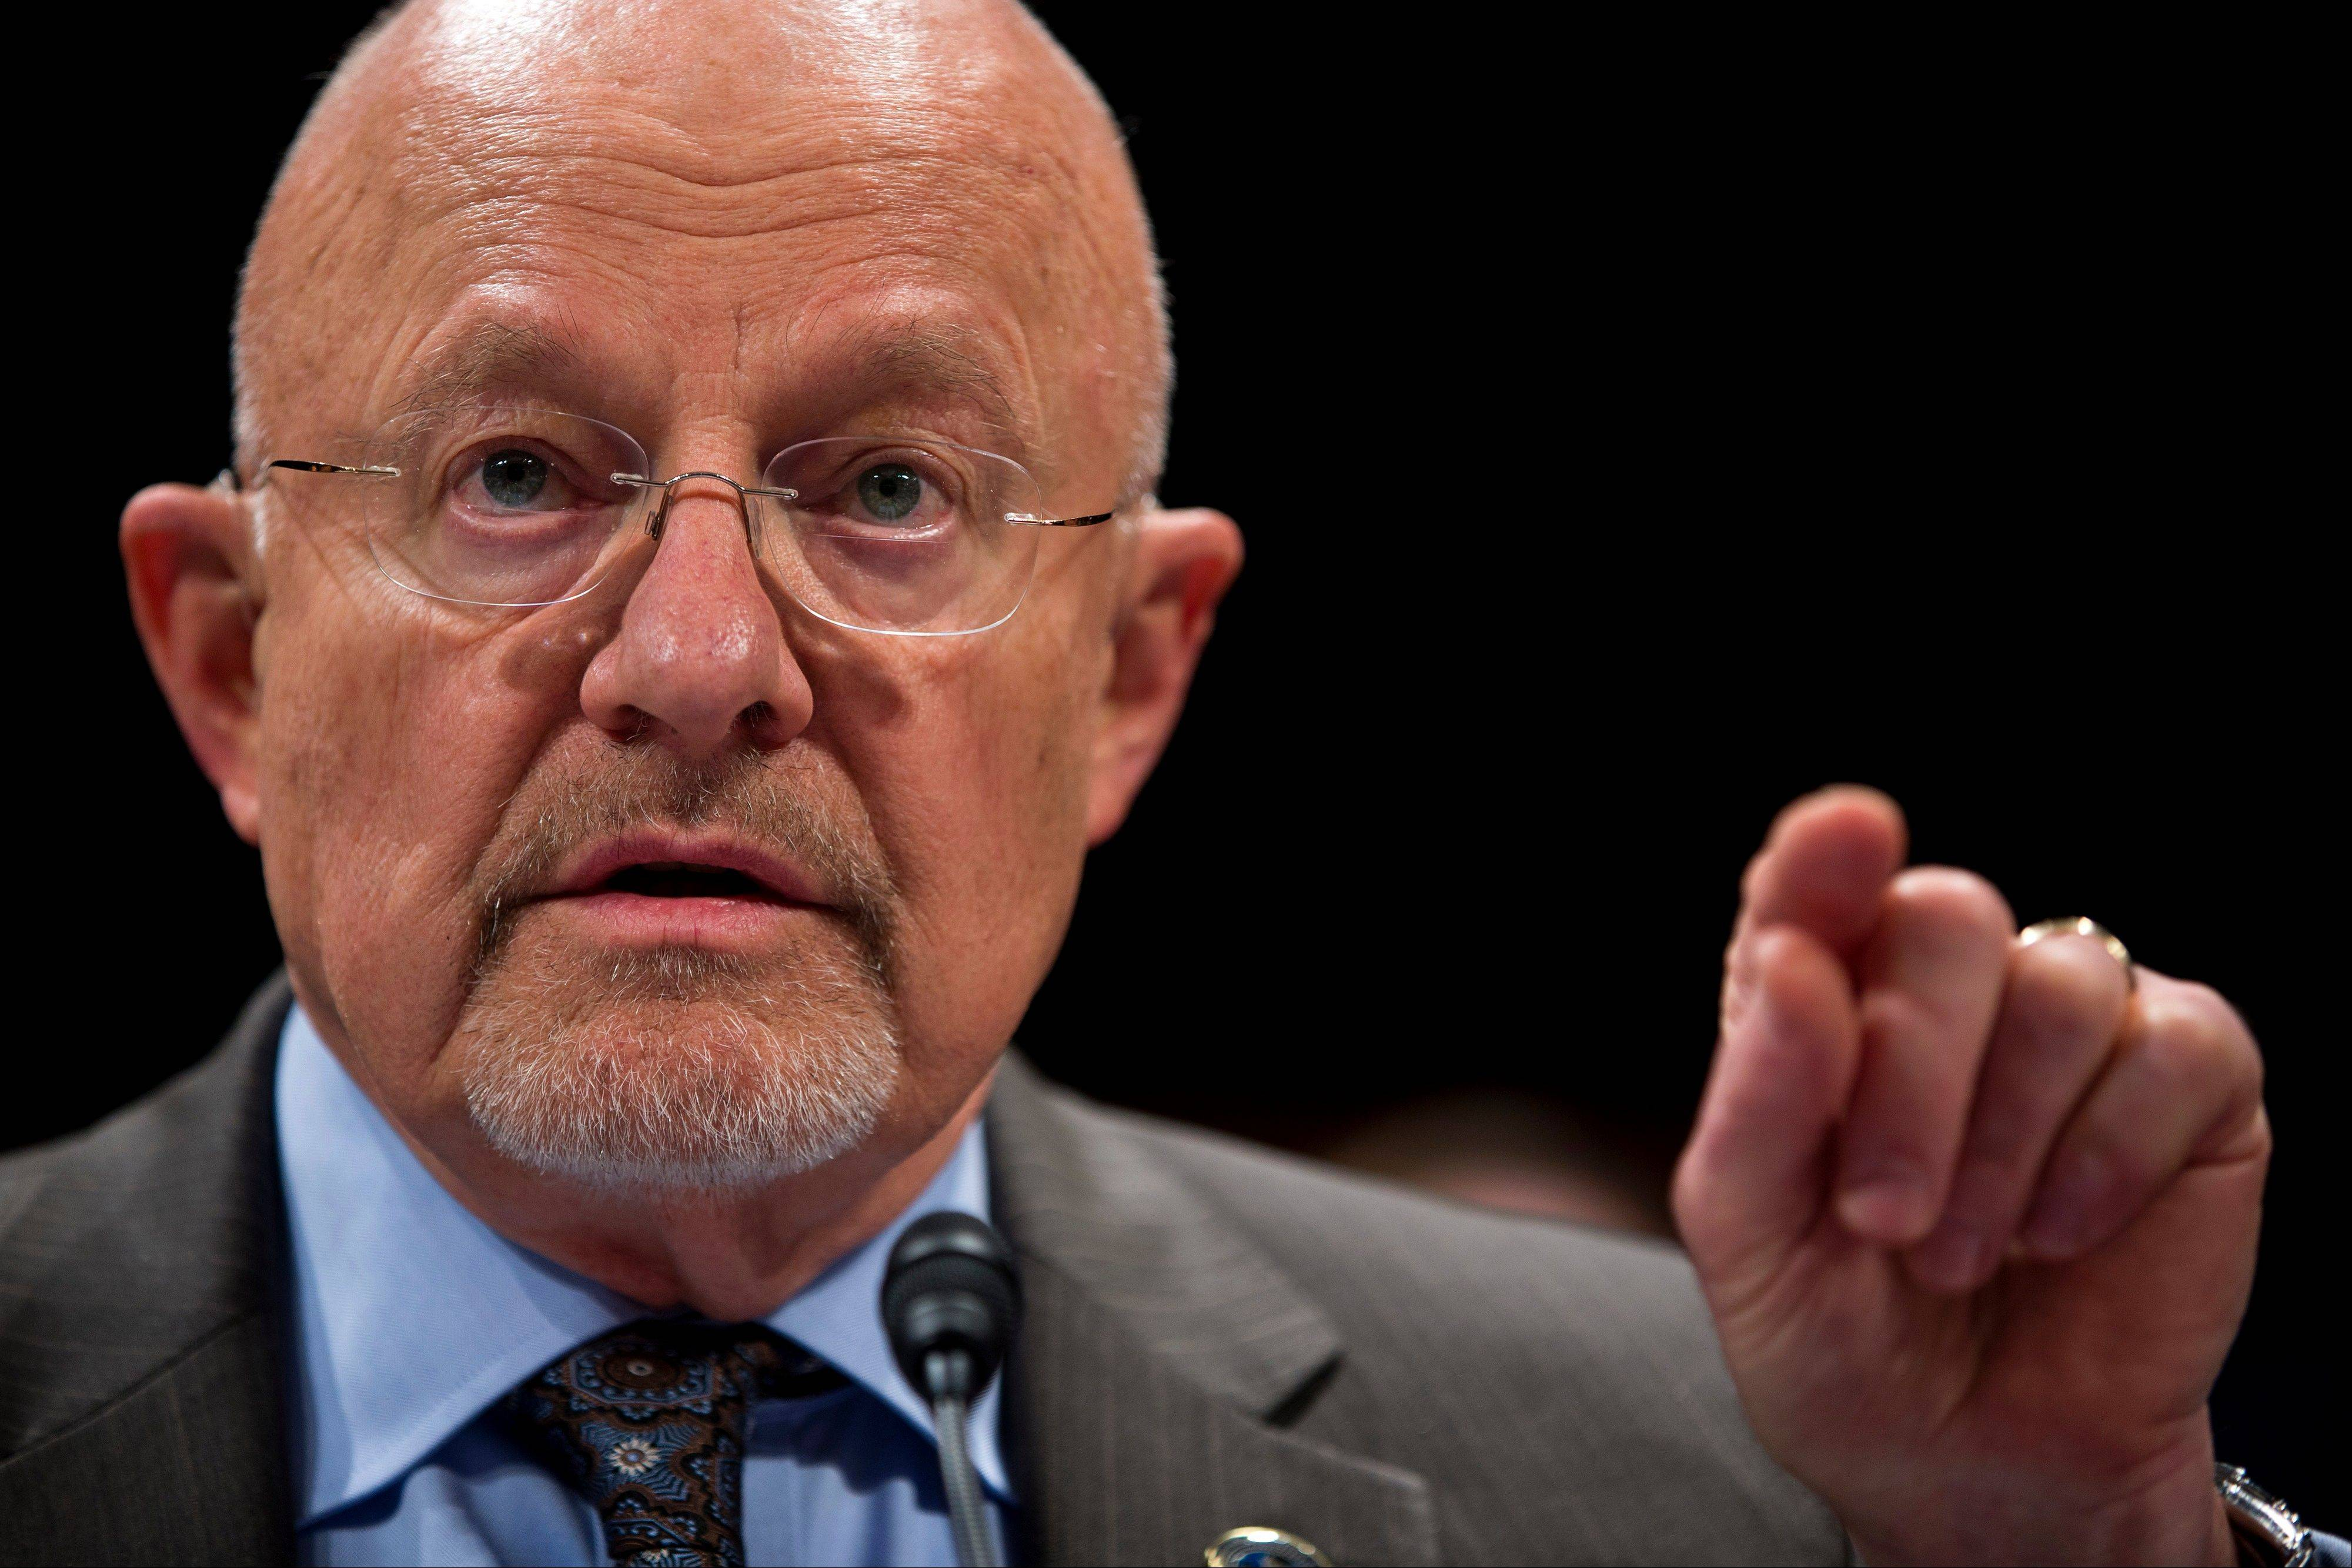 Director of National Intelligence James Clapper testifies on Capitol Hill on Tuesday before the House Intelligence Committee. Faced with anger over revelations about U.S. spying at home and abroad, members of Congress suggested Tuesday that programs the Obama administration says are needed to combat terrorism may have gone too far.